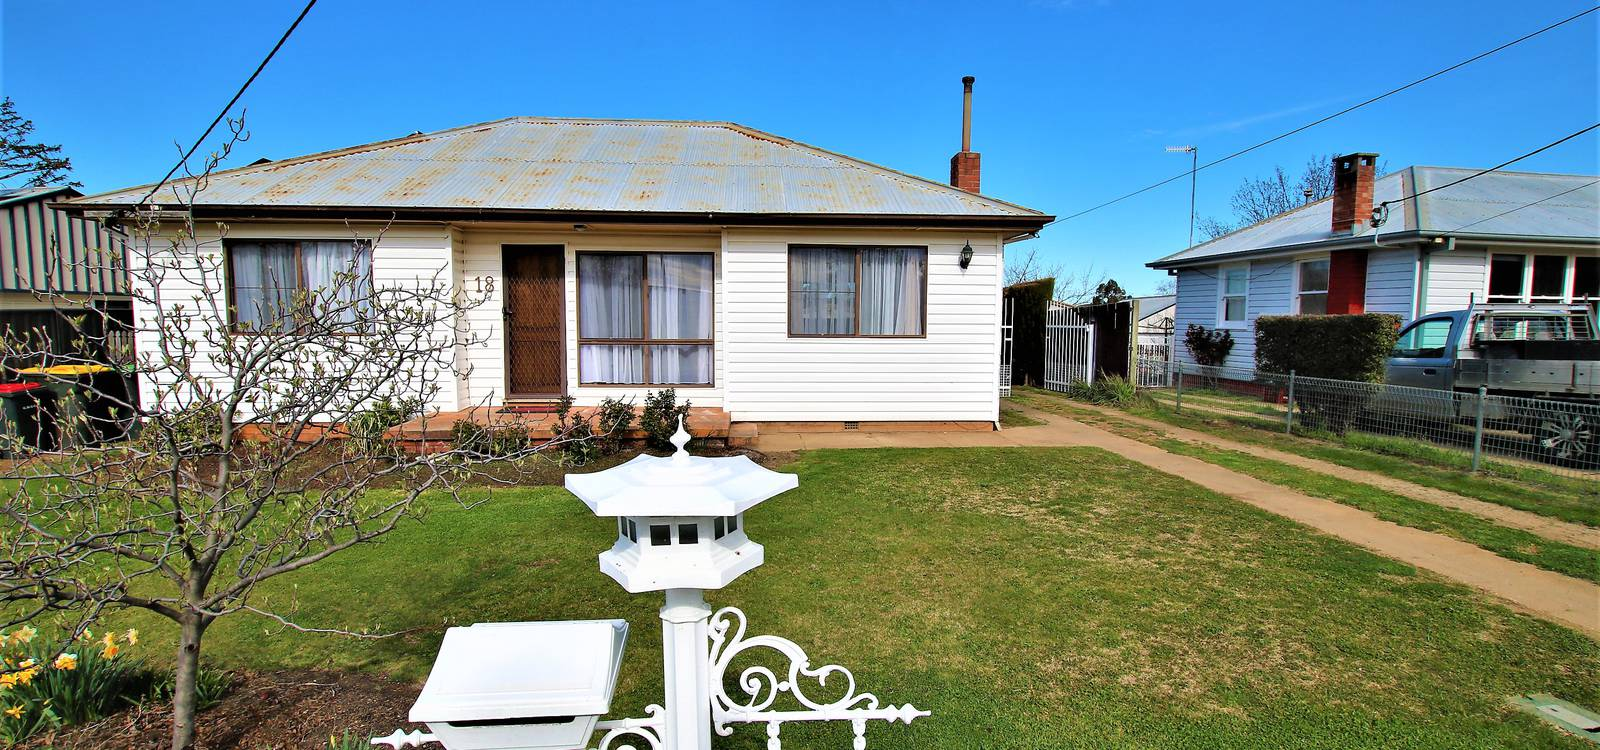 18 Bligh Street COOMA, NSW 2630 - photo 1